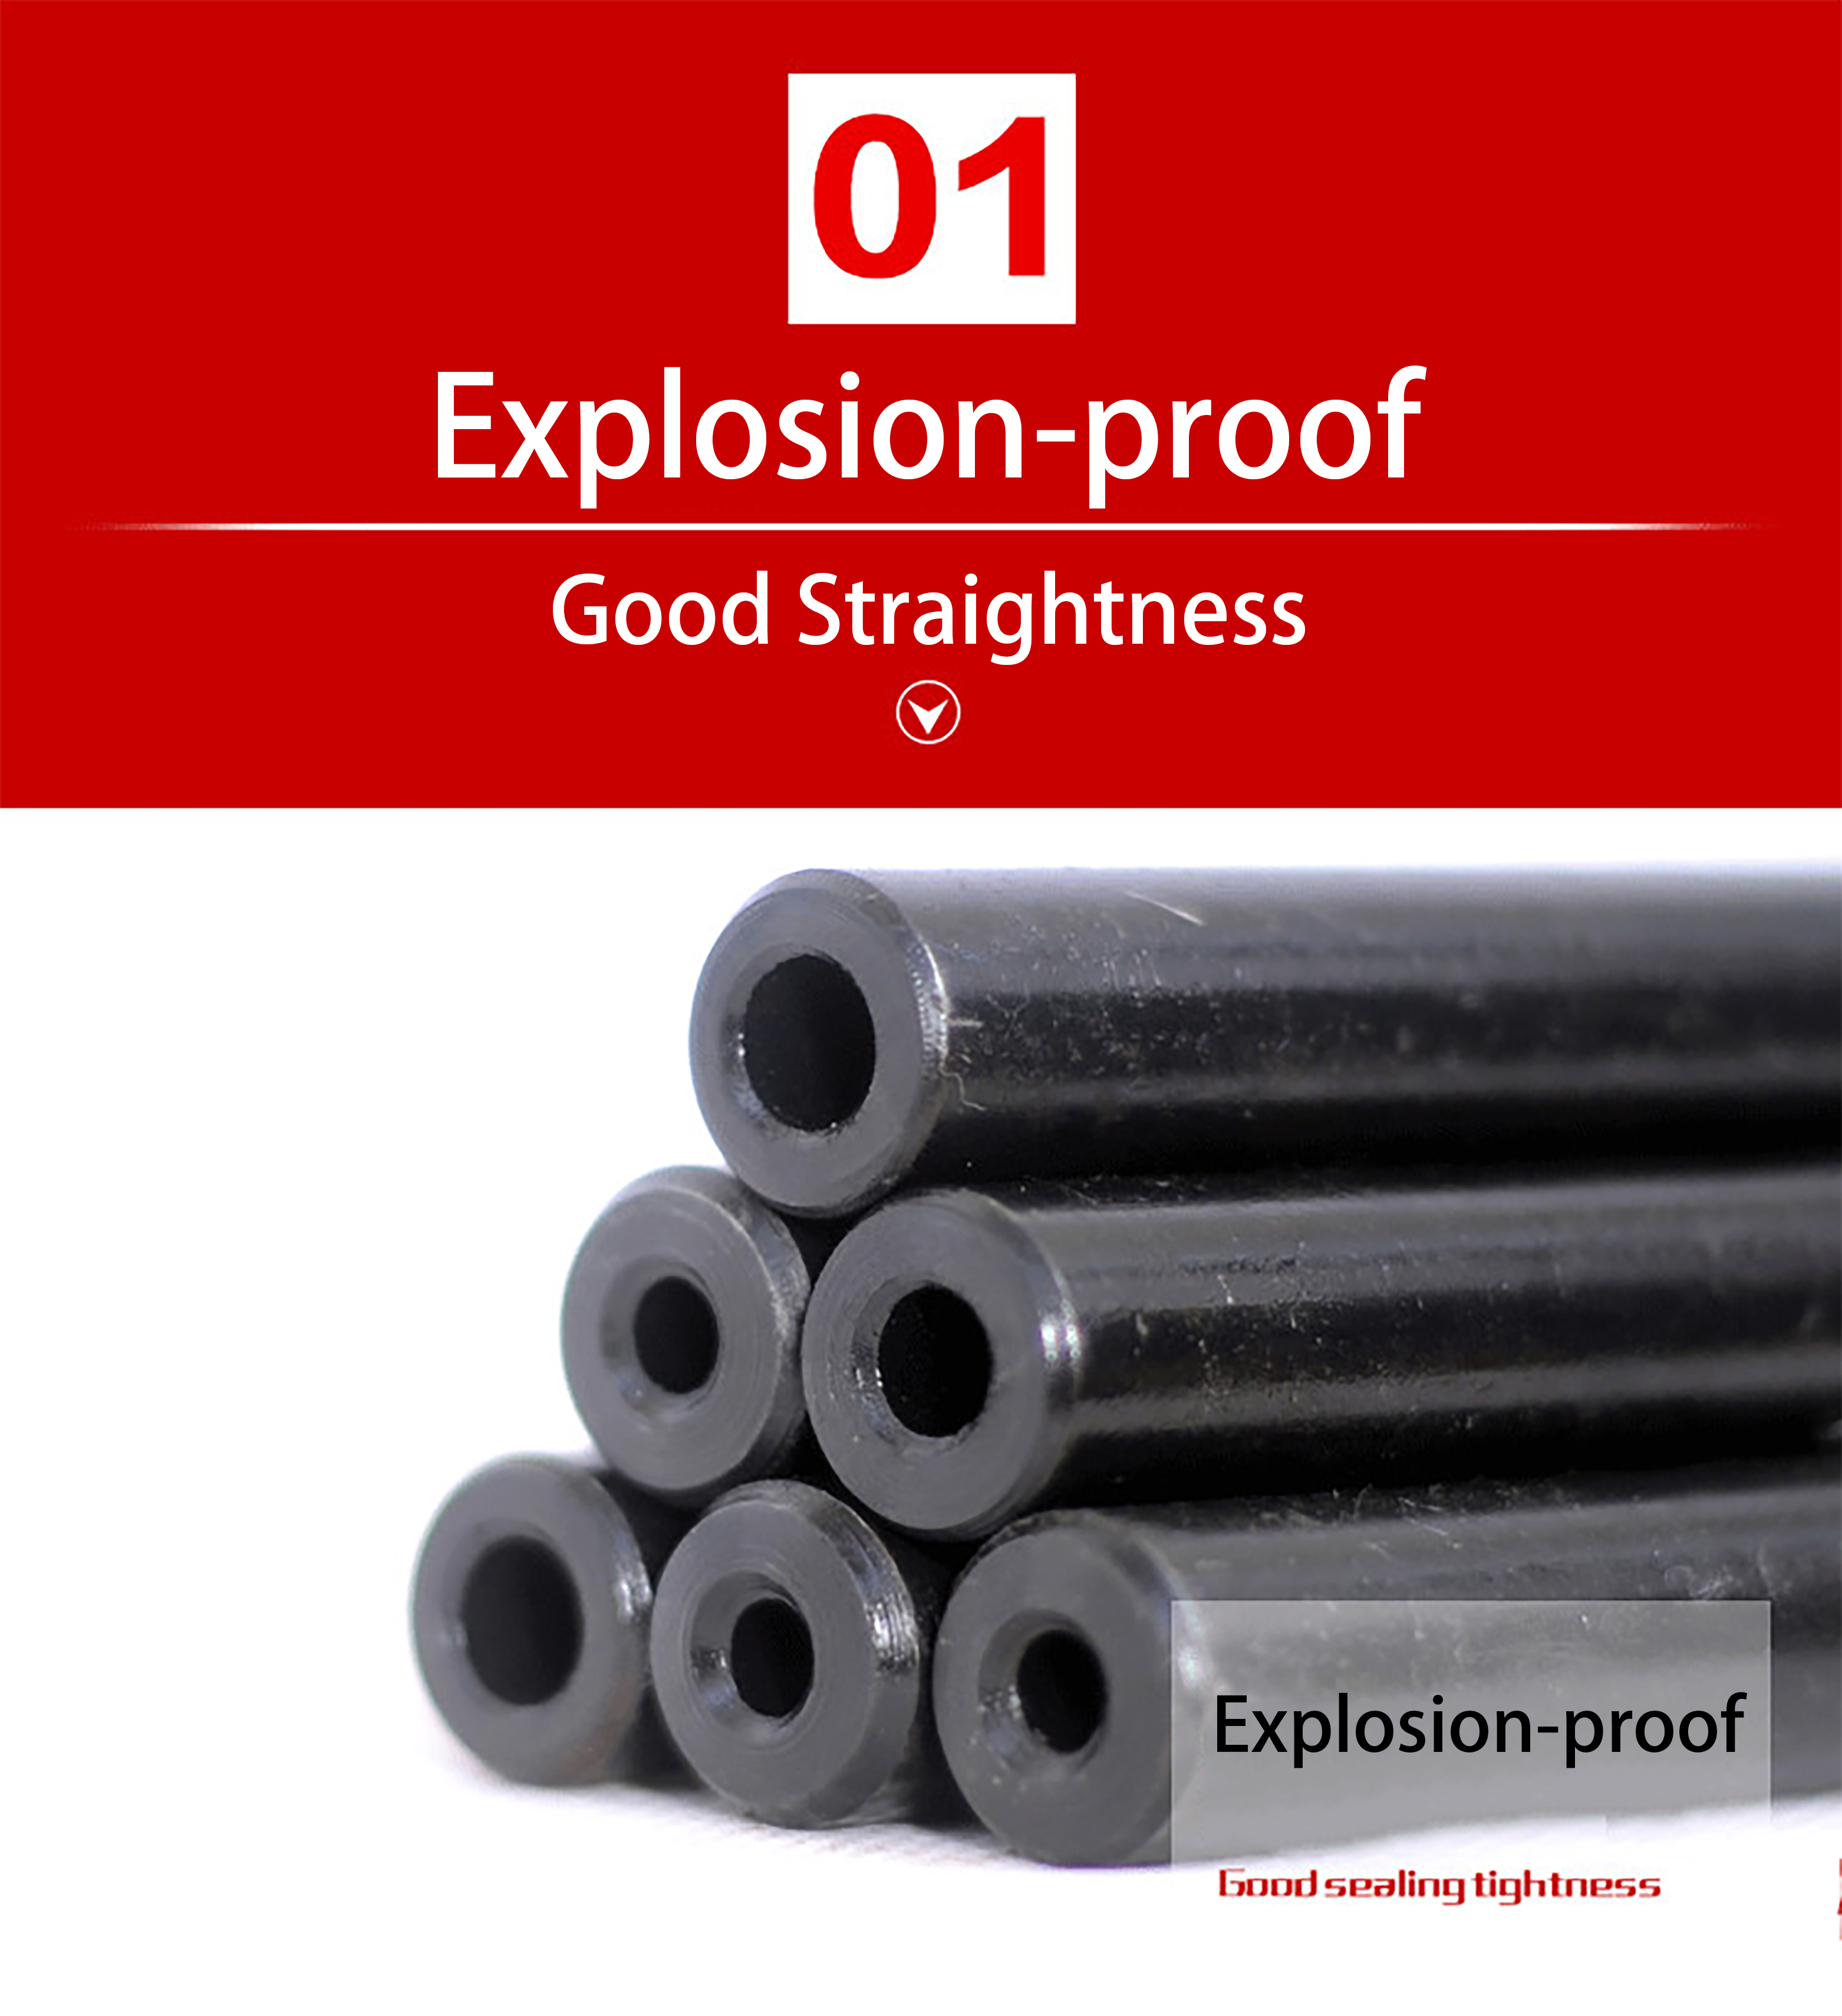 16mm Seamless Steel Pipe Hydraulic Boiler Explosion-proof Seamless Steel Tube For Home DIY